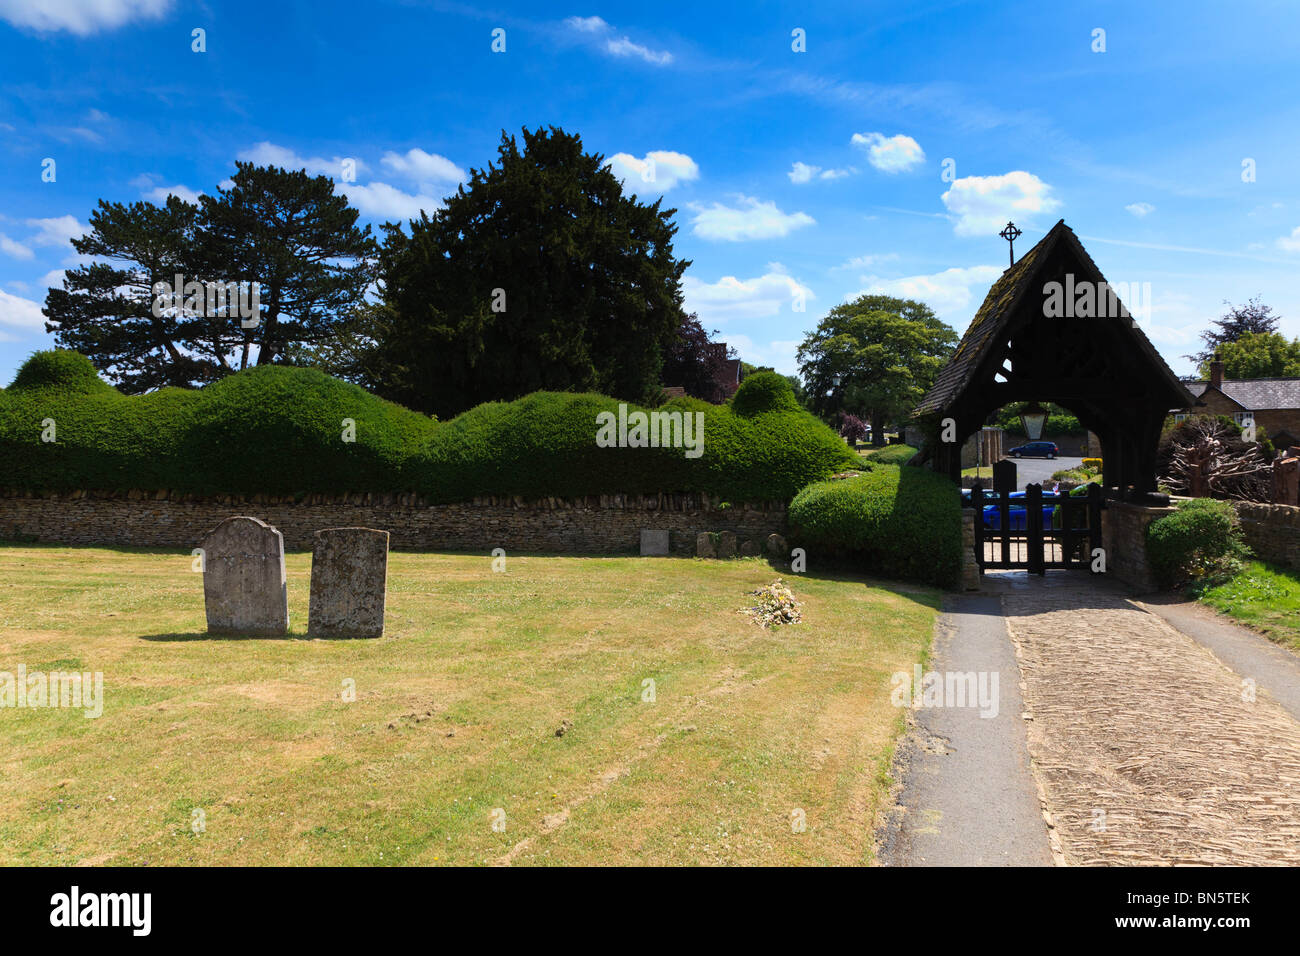 The Lychgate and yew hedge around the Churchyard of All Saints Church, Turvey, Bedfordshire, UK - Stock Image